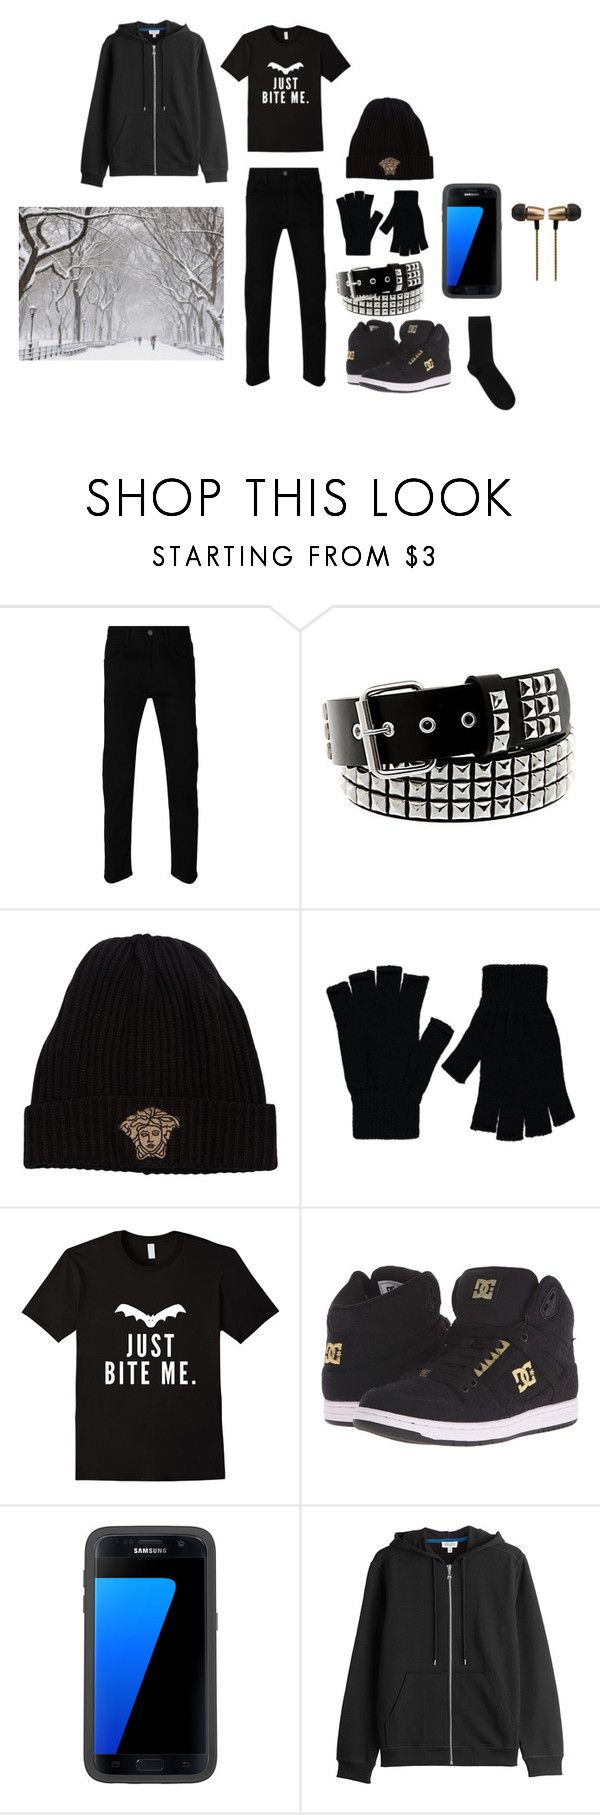 """Emo Vampire Outfit"" by wickedghostman94 on Polyvore featuring Gucci, Versace, George, DC Shoes, OtterBox, Kenzo, Cynthia Rowley, men's fashion and menswear"